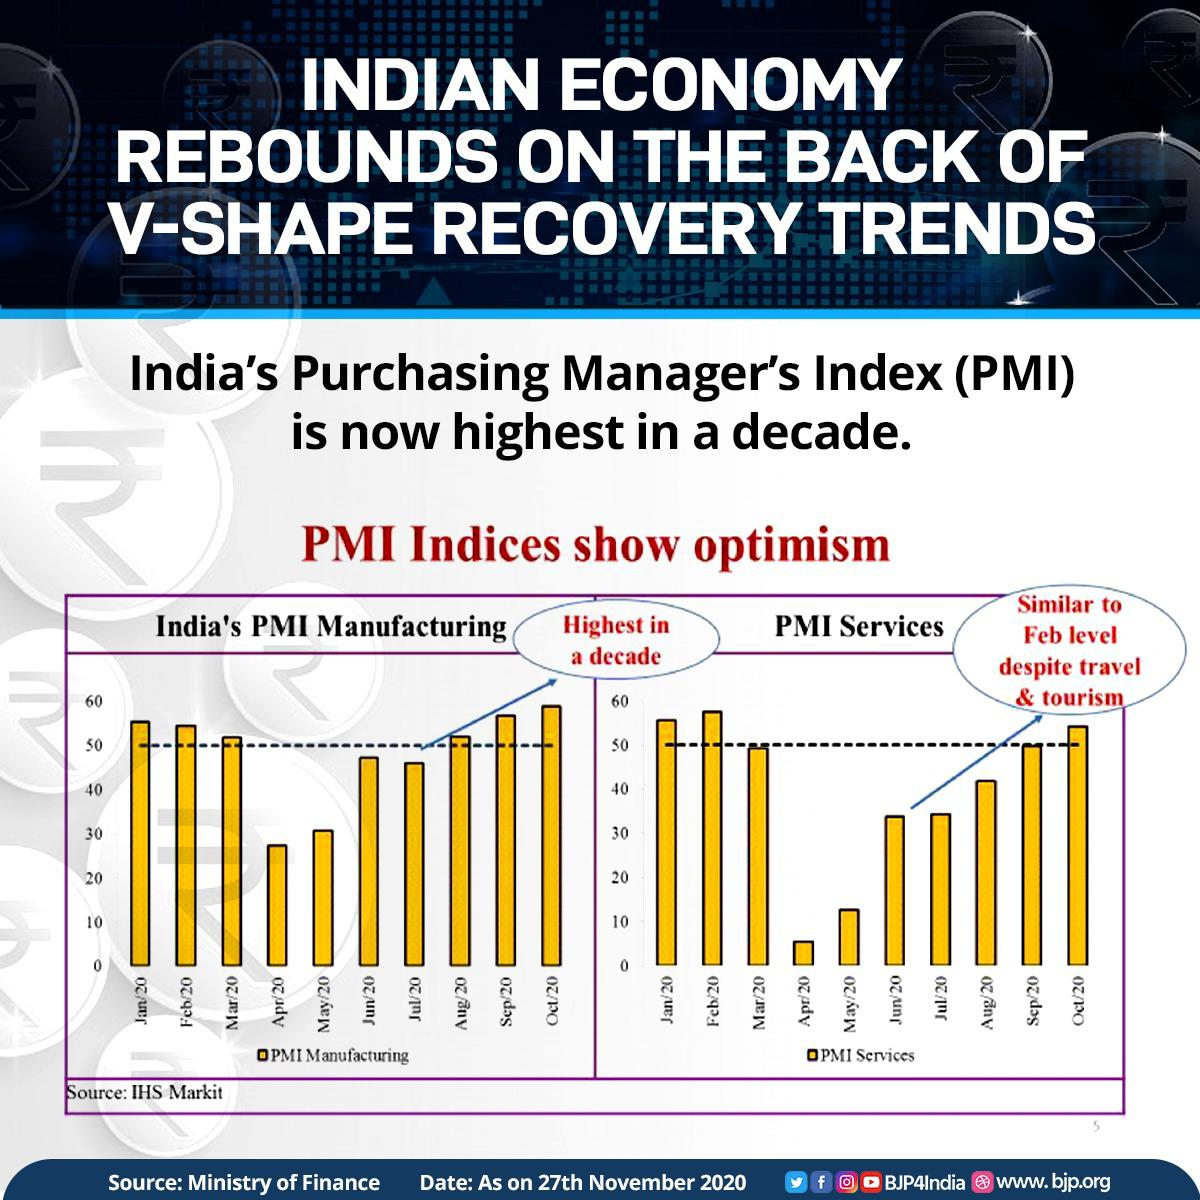 Indian economy rebounds on the back of V-shape recovery trends across the sectors.  India' PMI in manufacturing has reached the highest in a decade.  PMI in Services has reached to similar levels of February 2020 despite the slump in Travel & Tourism industries.  #EconomyRebounds